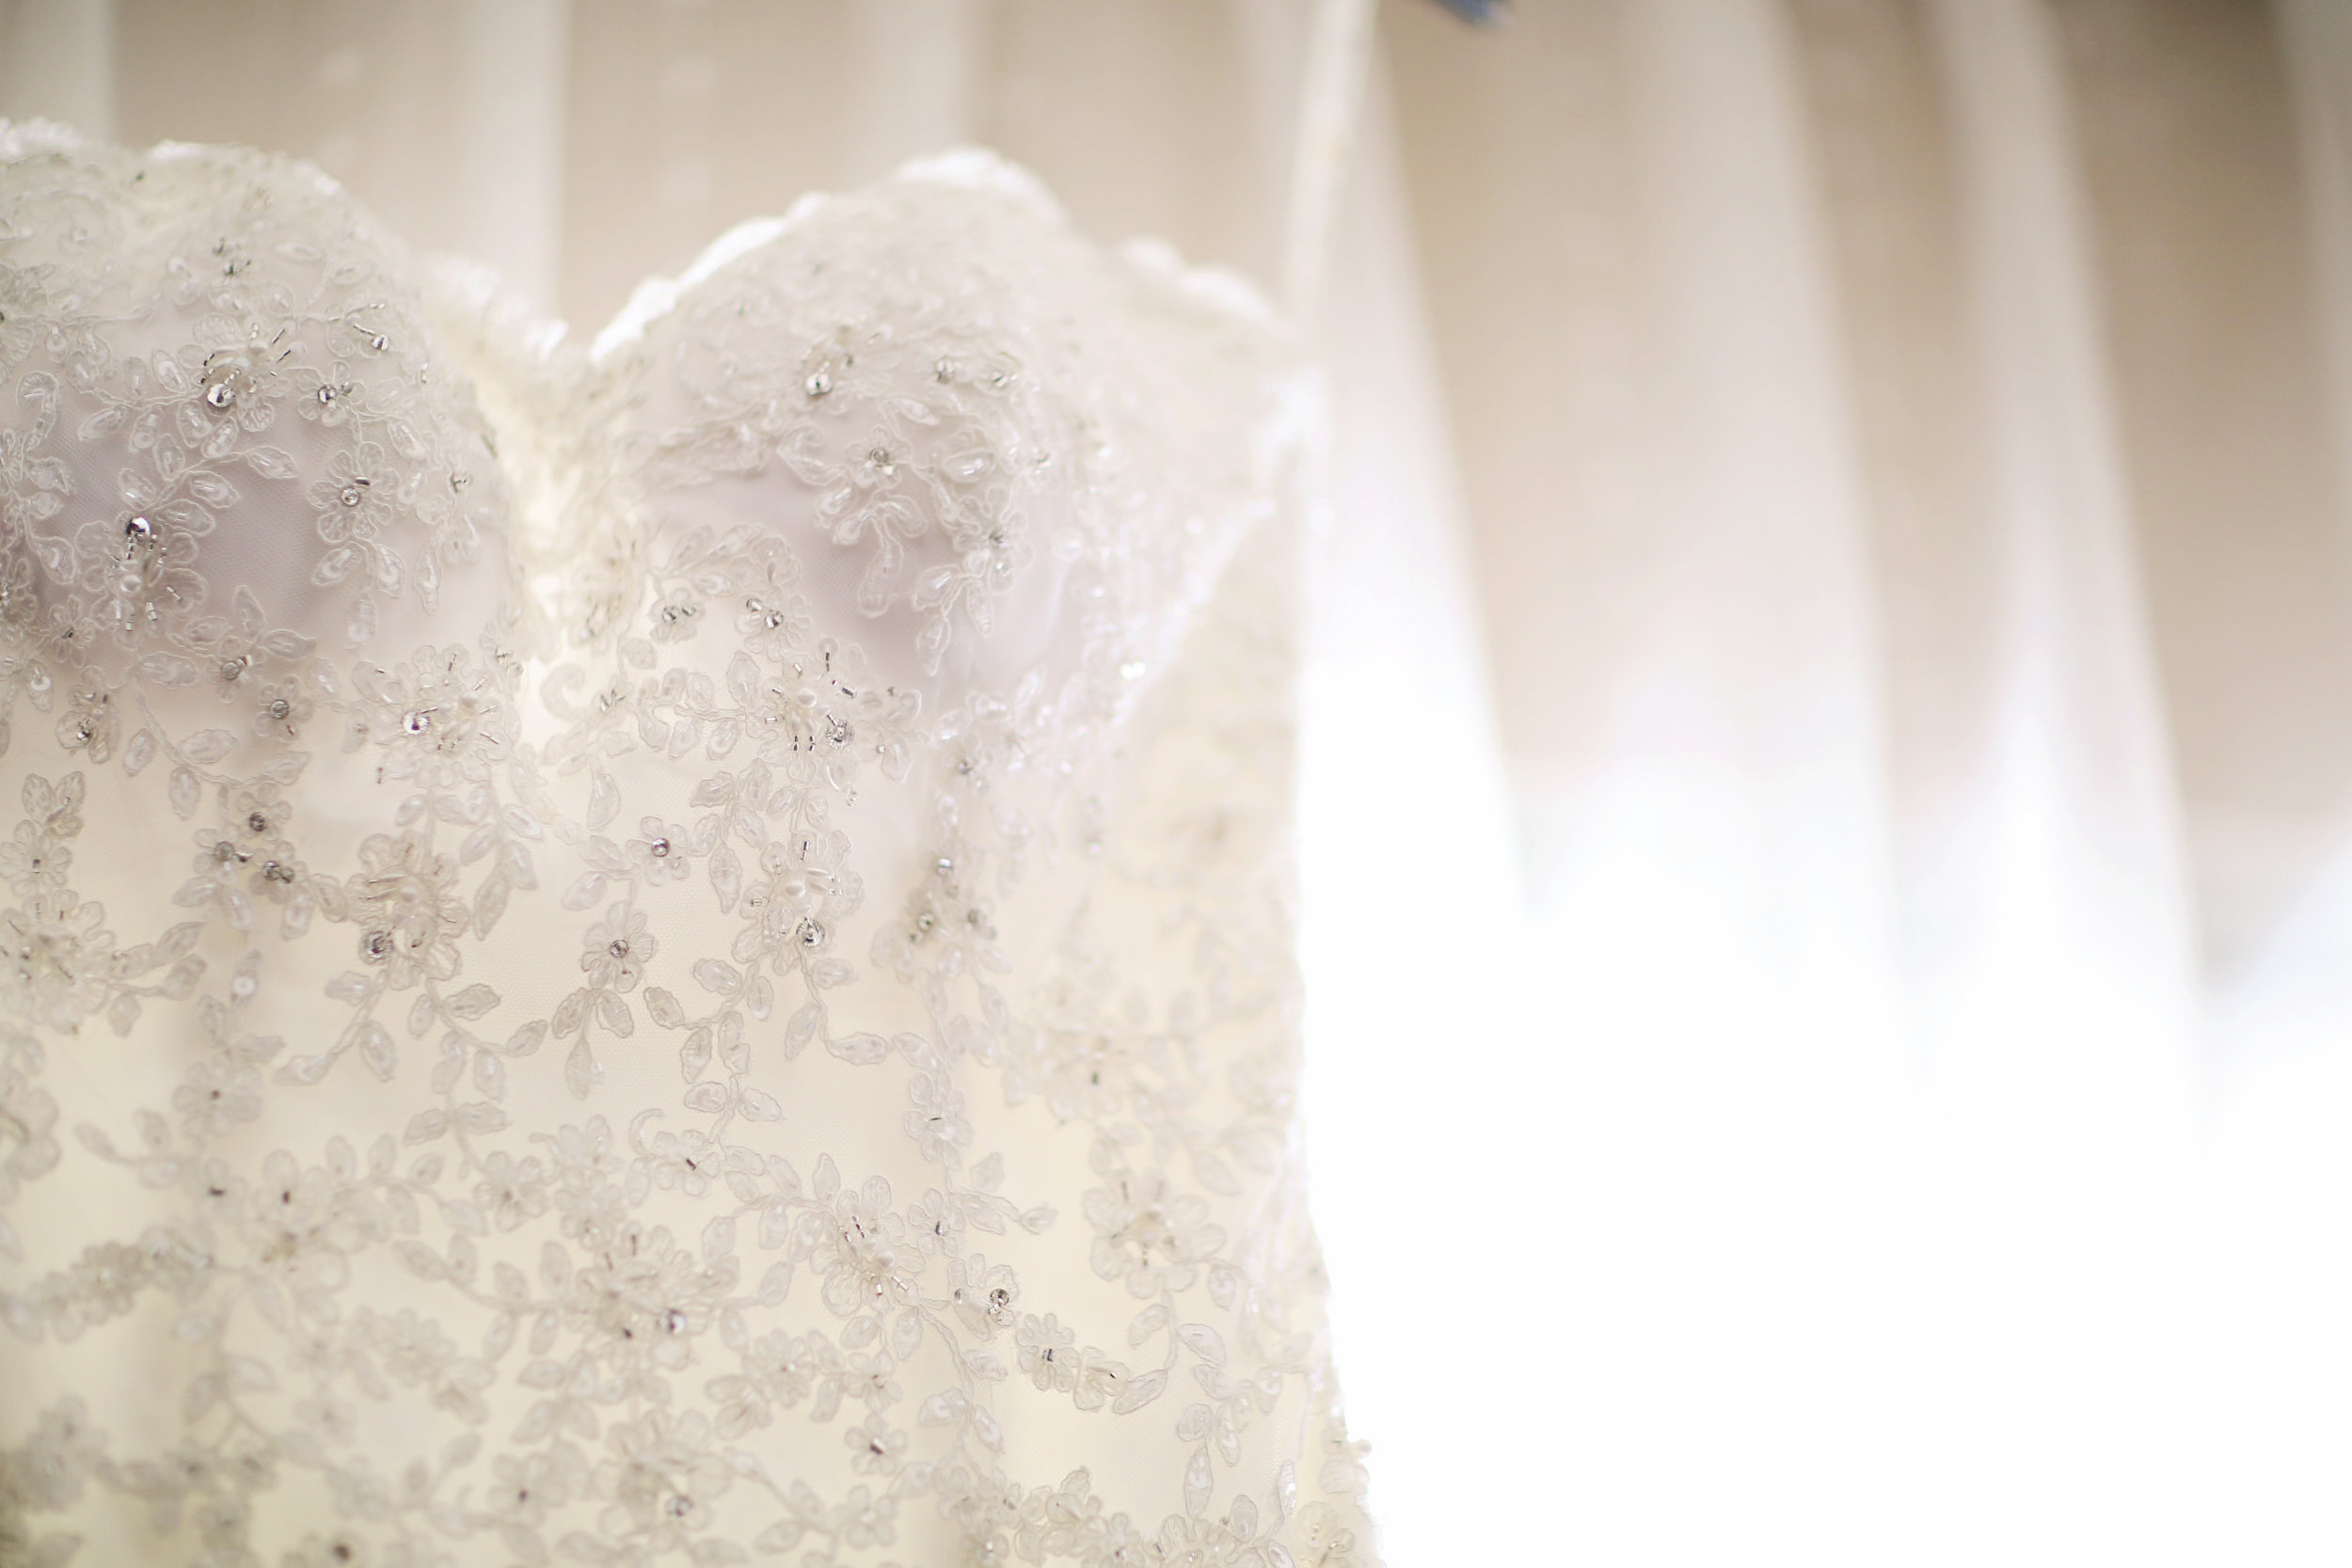 Beaded wedding gown is the subject of this wedding photo. Fine art photography.